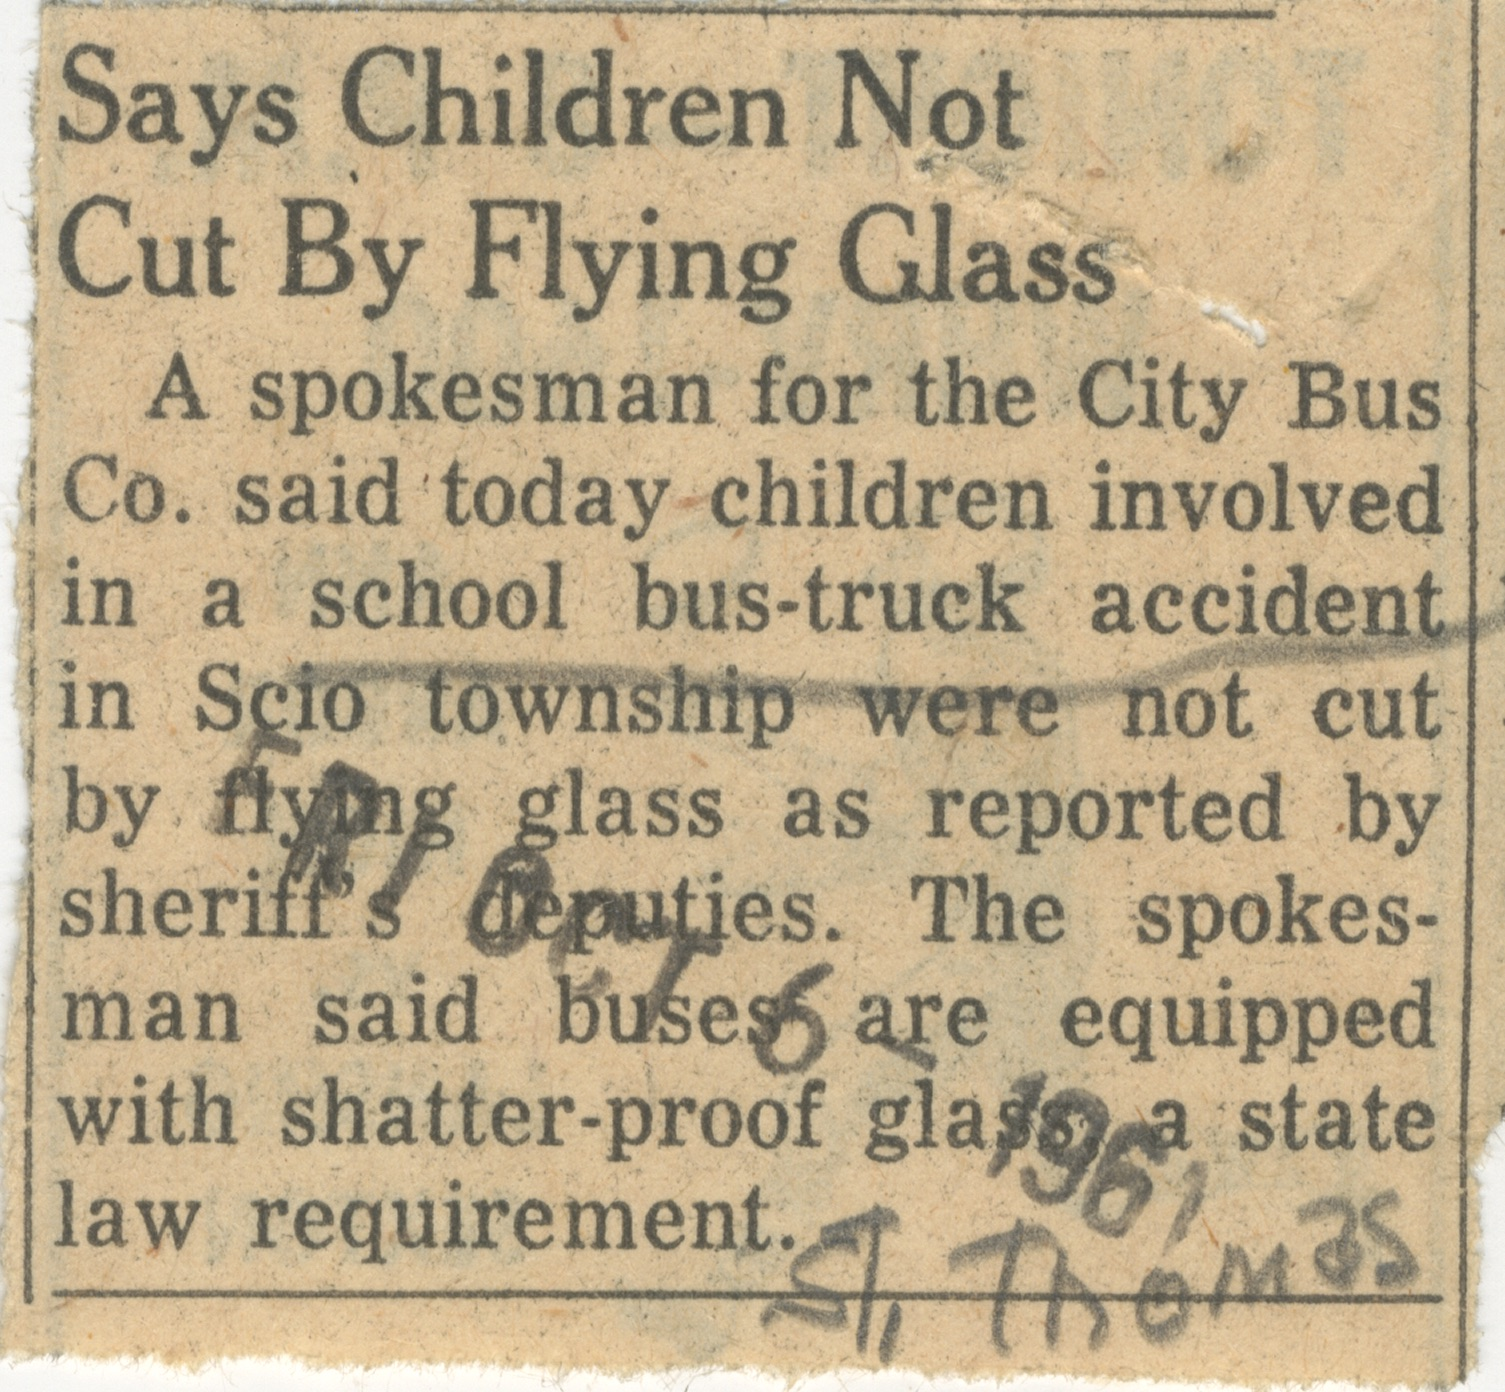 Says Children Not Cut By Flying Glass image